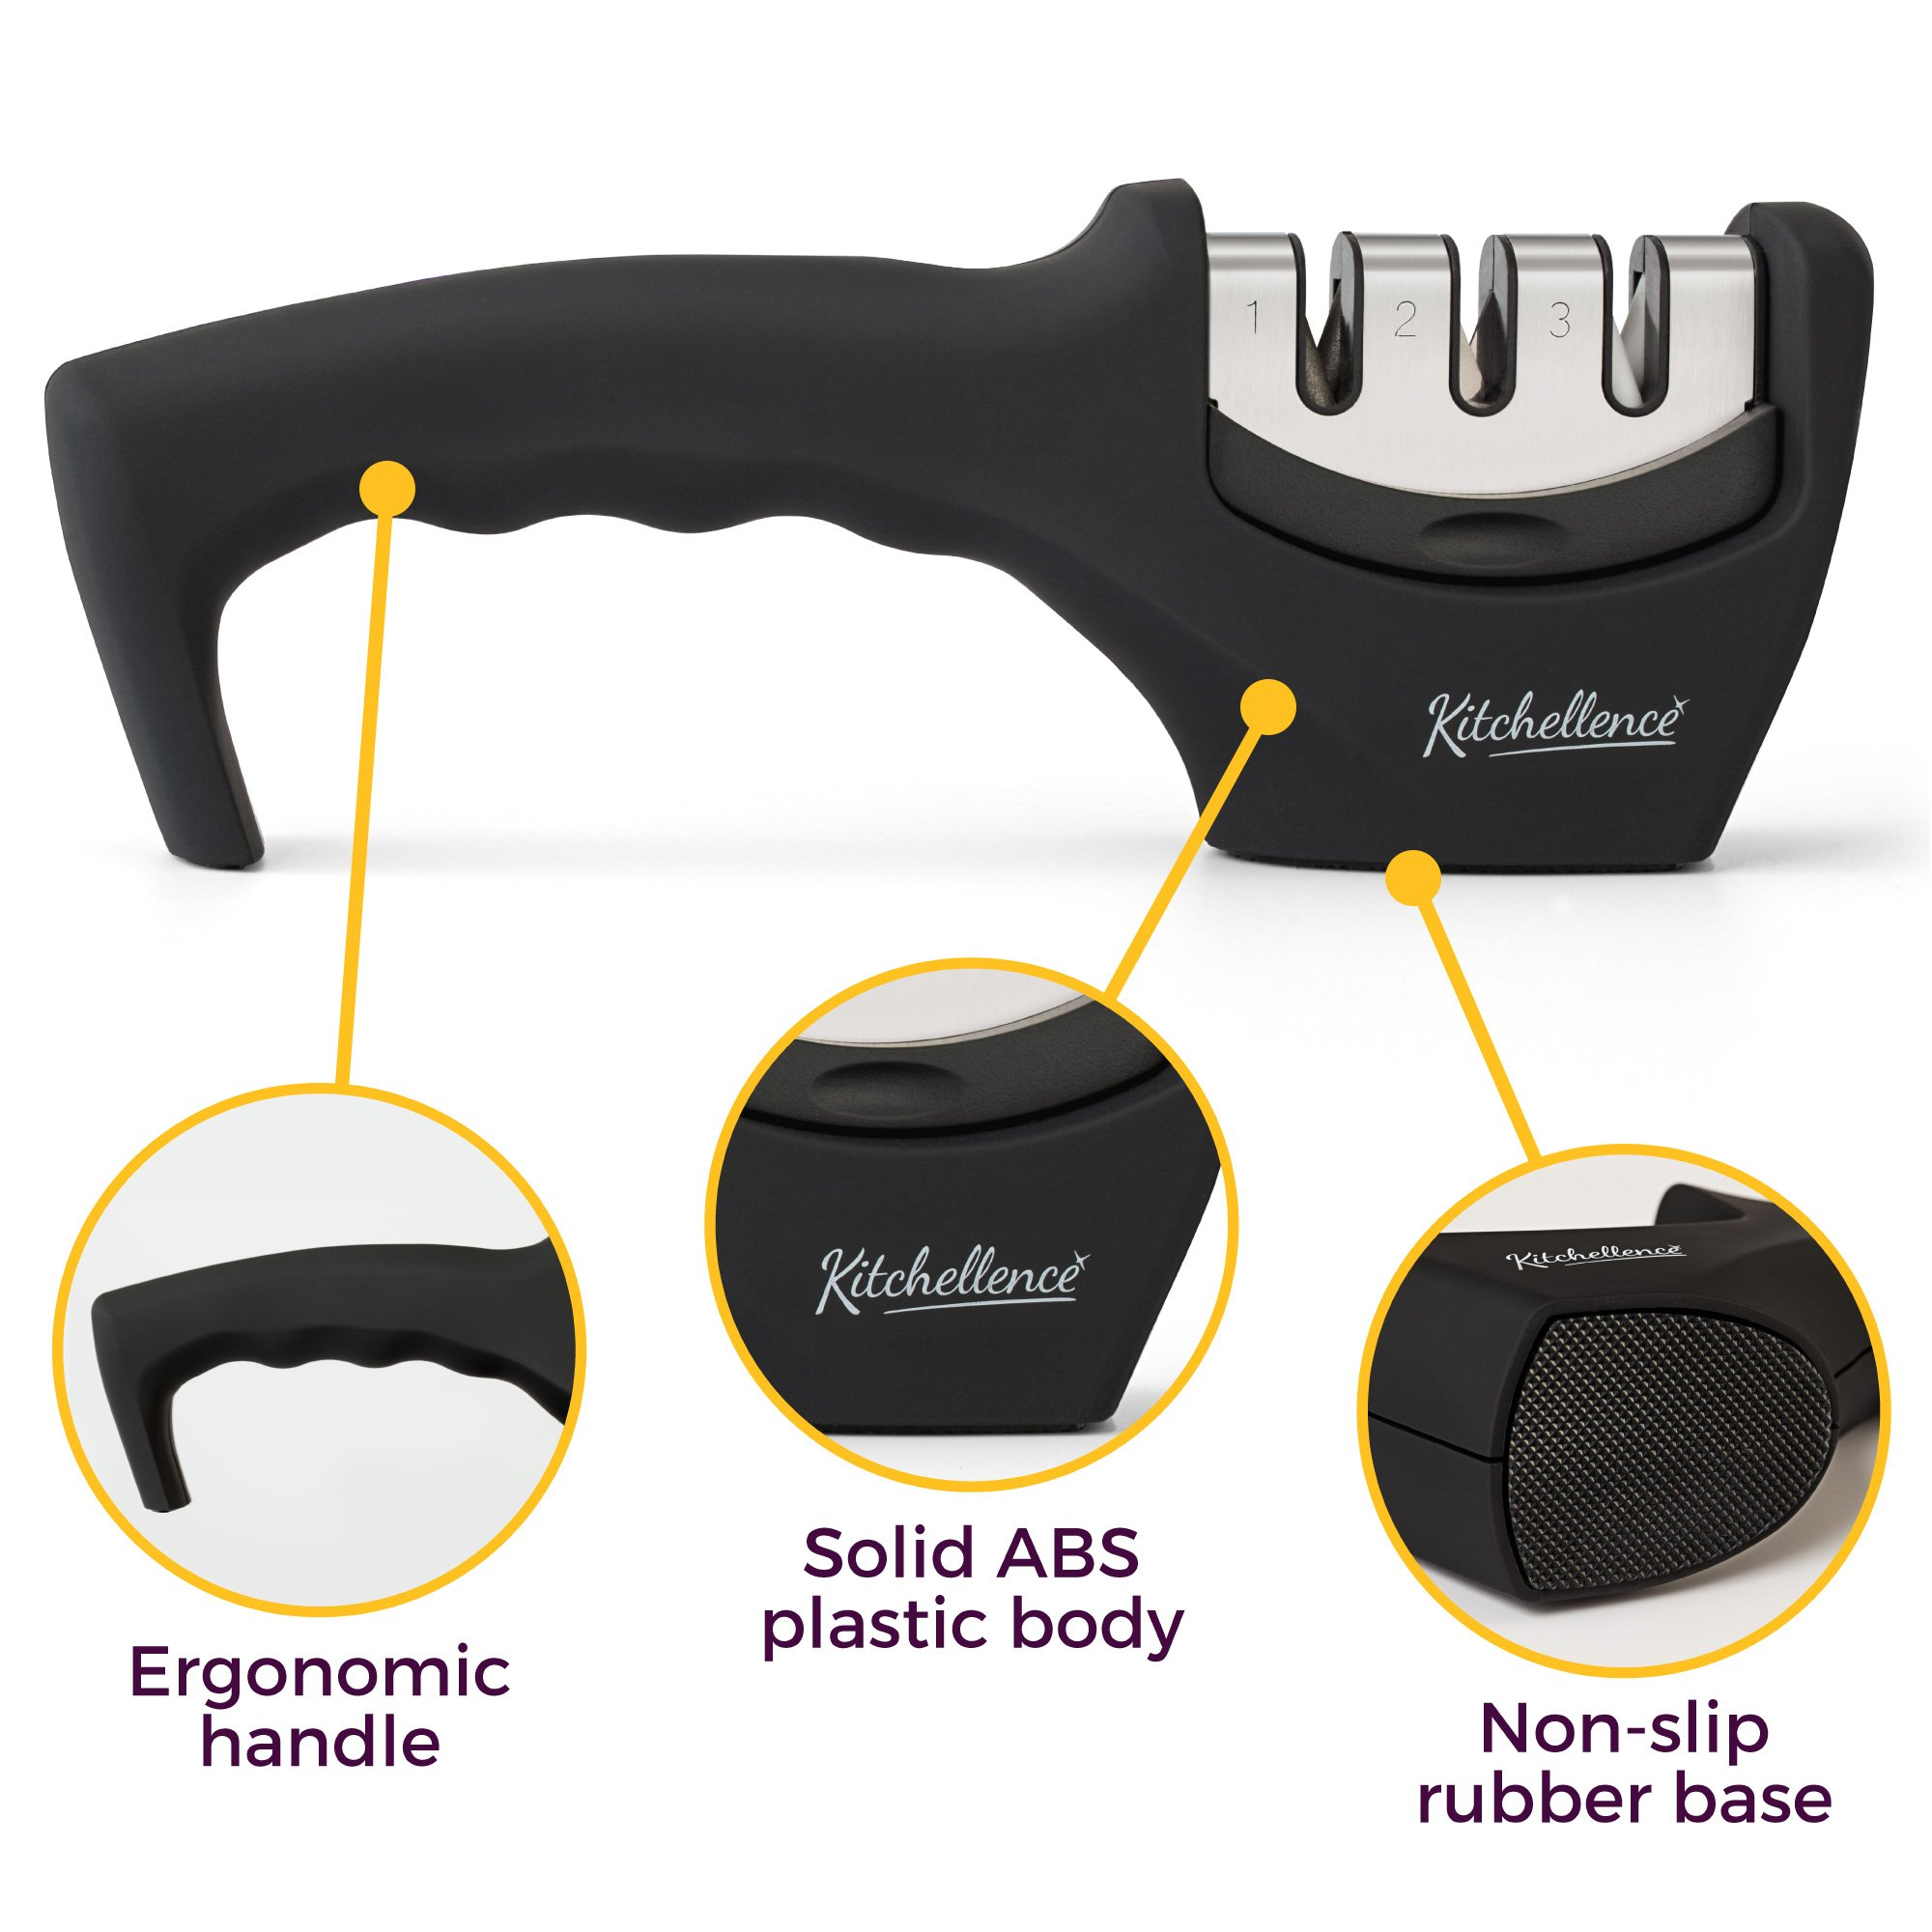 Kitchen Knife Sharpener - 3-Stage Knife Sharpening Tool Helps Repair, Restore and Polish Blades - Cut-Resistant Glove Included (Black) by Kitchellence (Image #3)